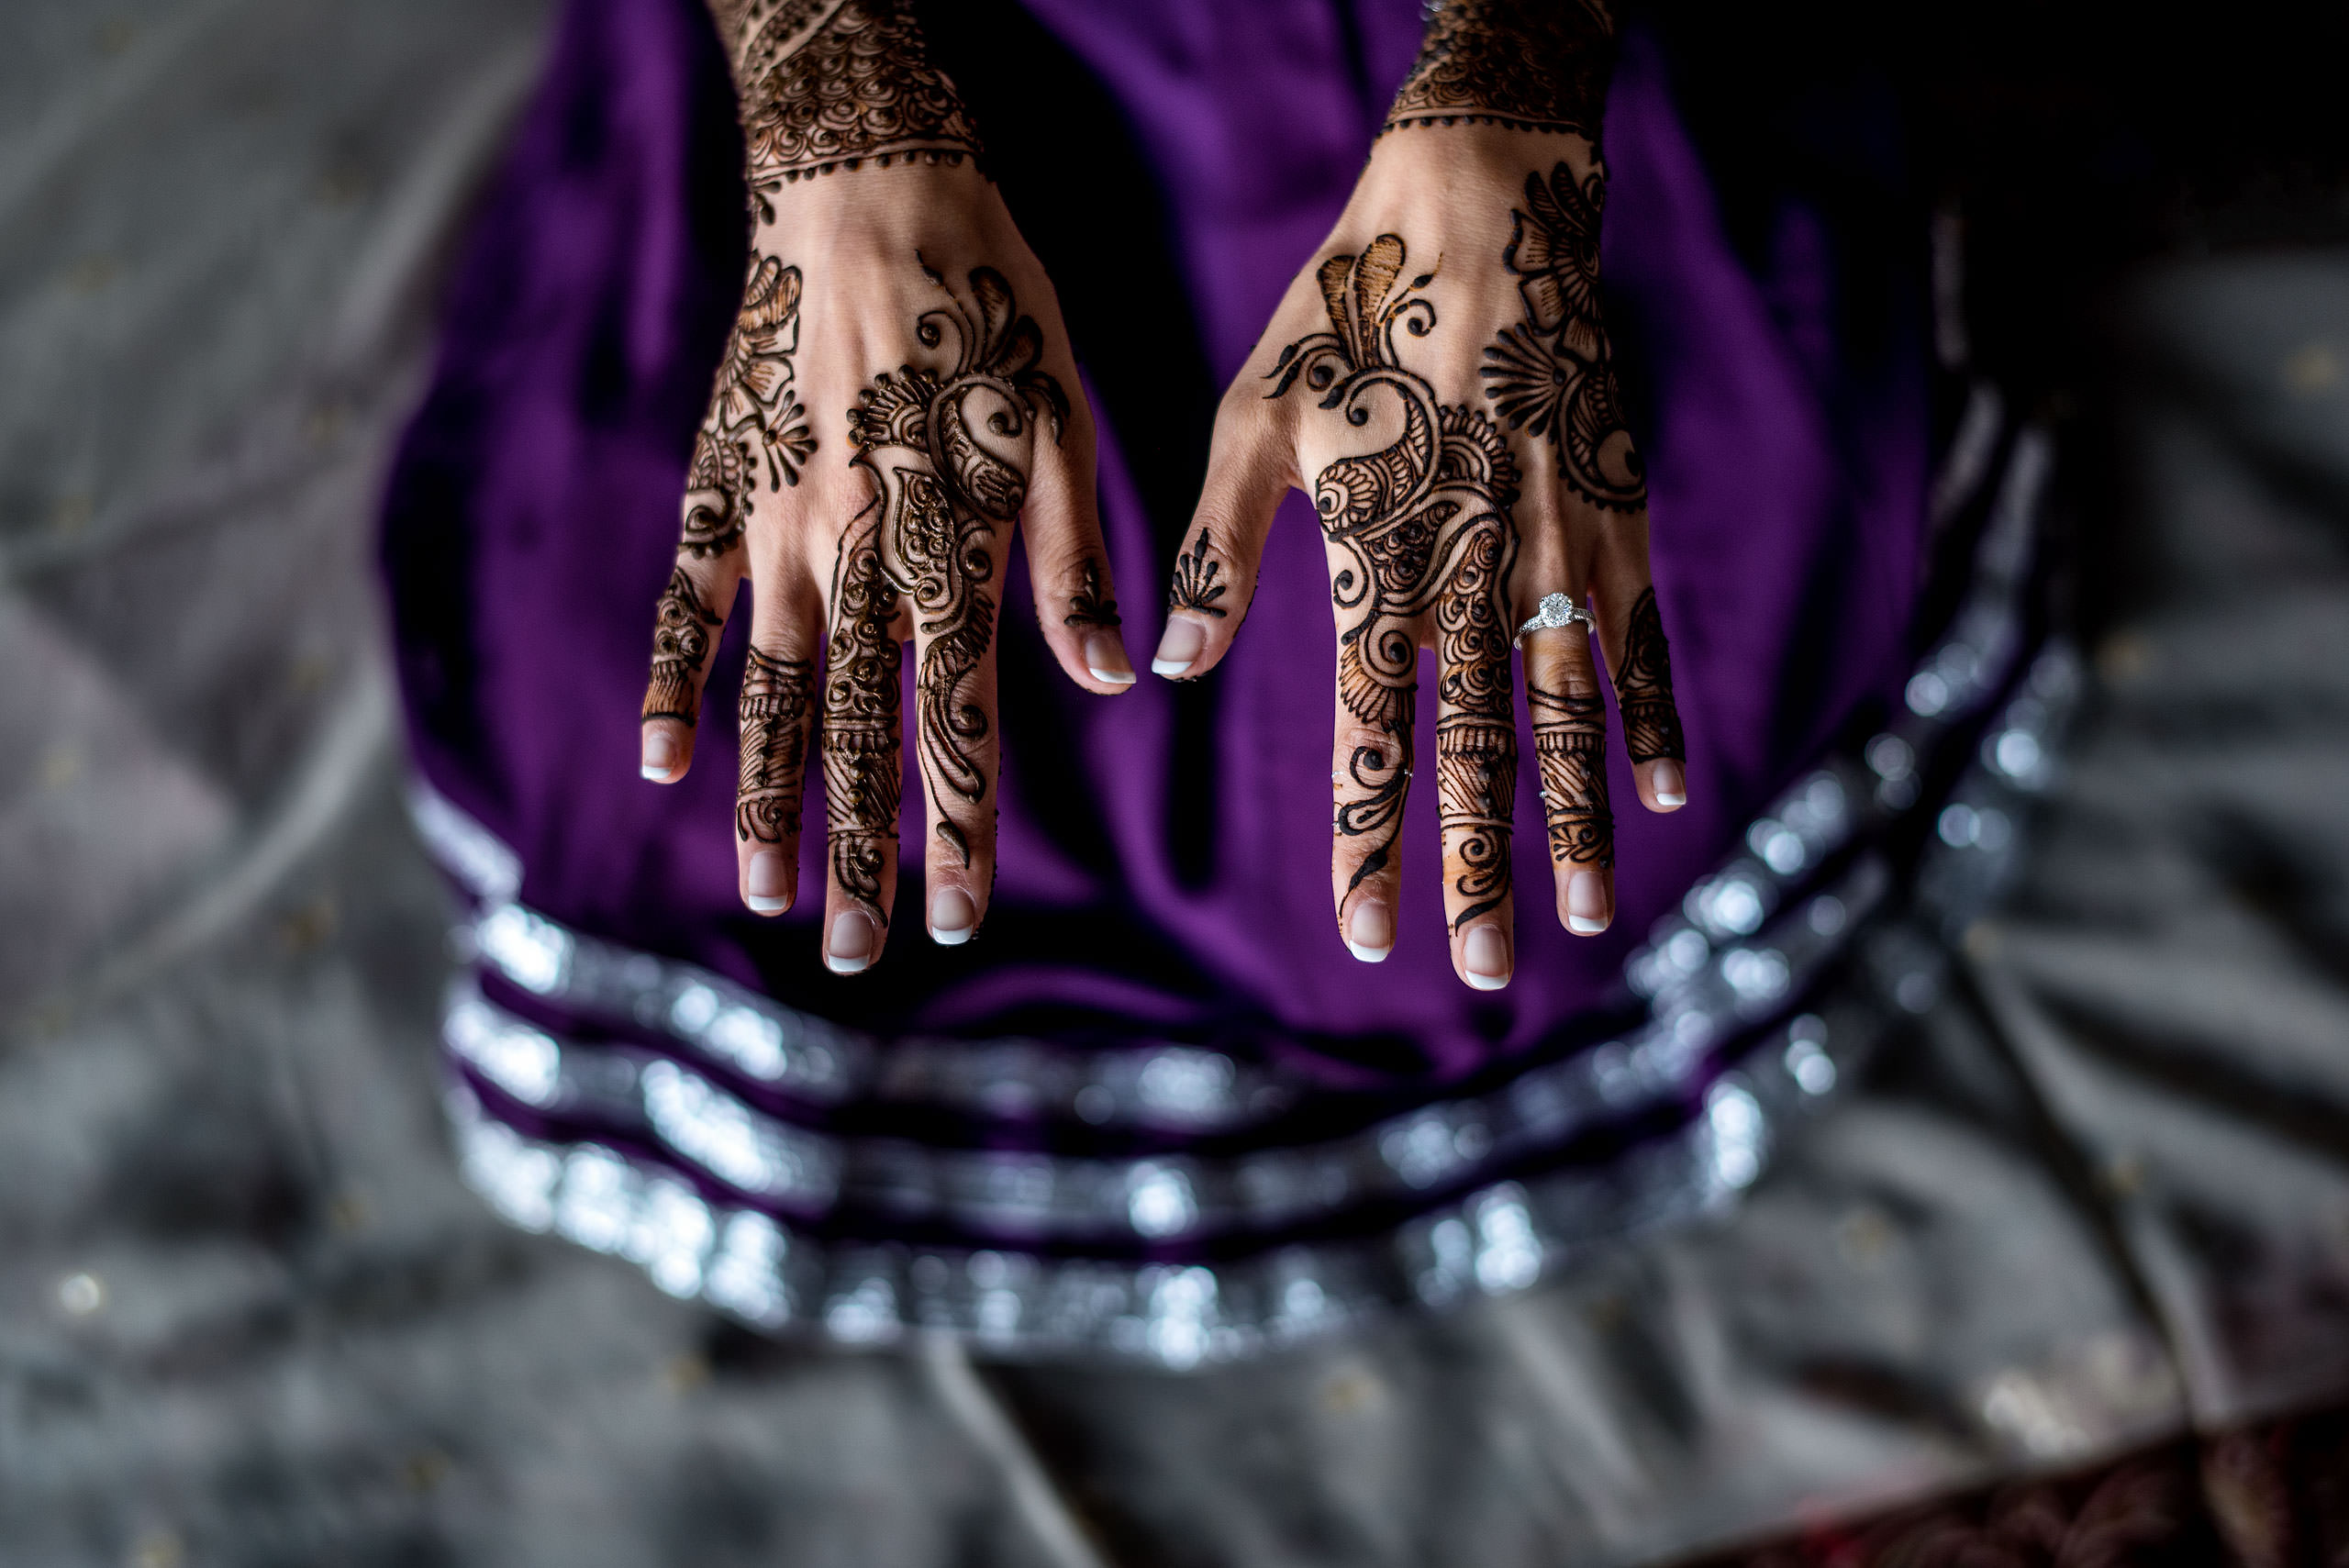 two hands above a purple dress with a wedding ring by Calgary Banff Wedding Photographer Sean LeBlanc